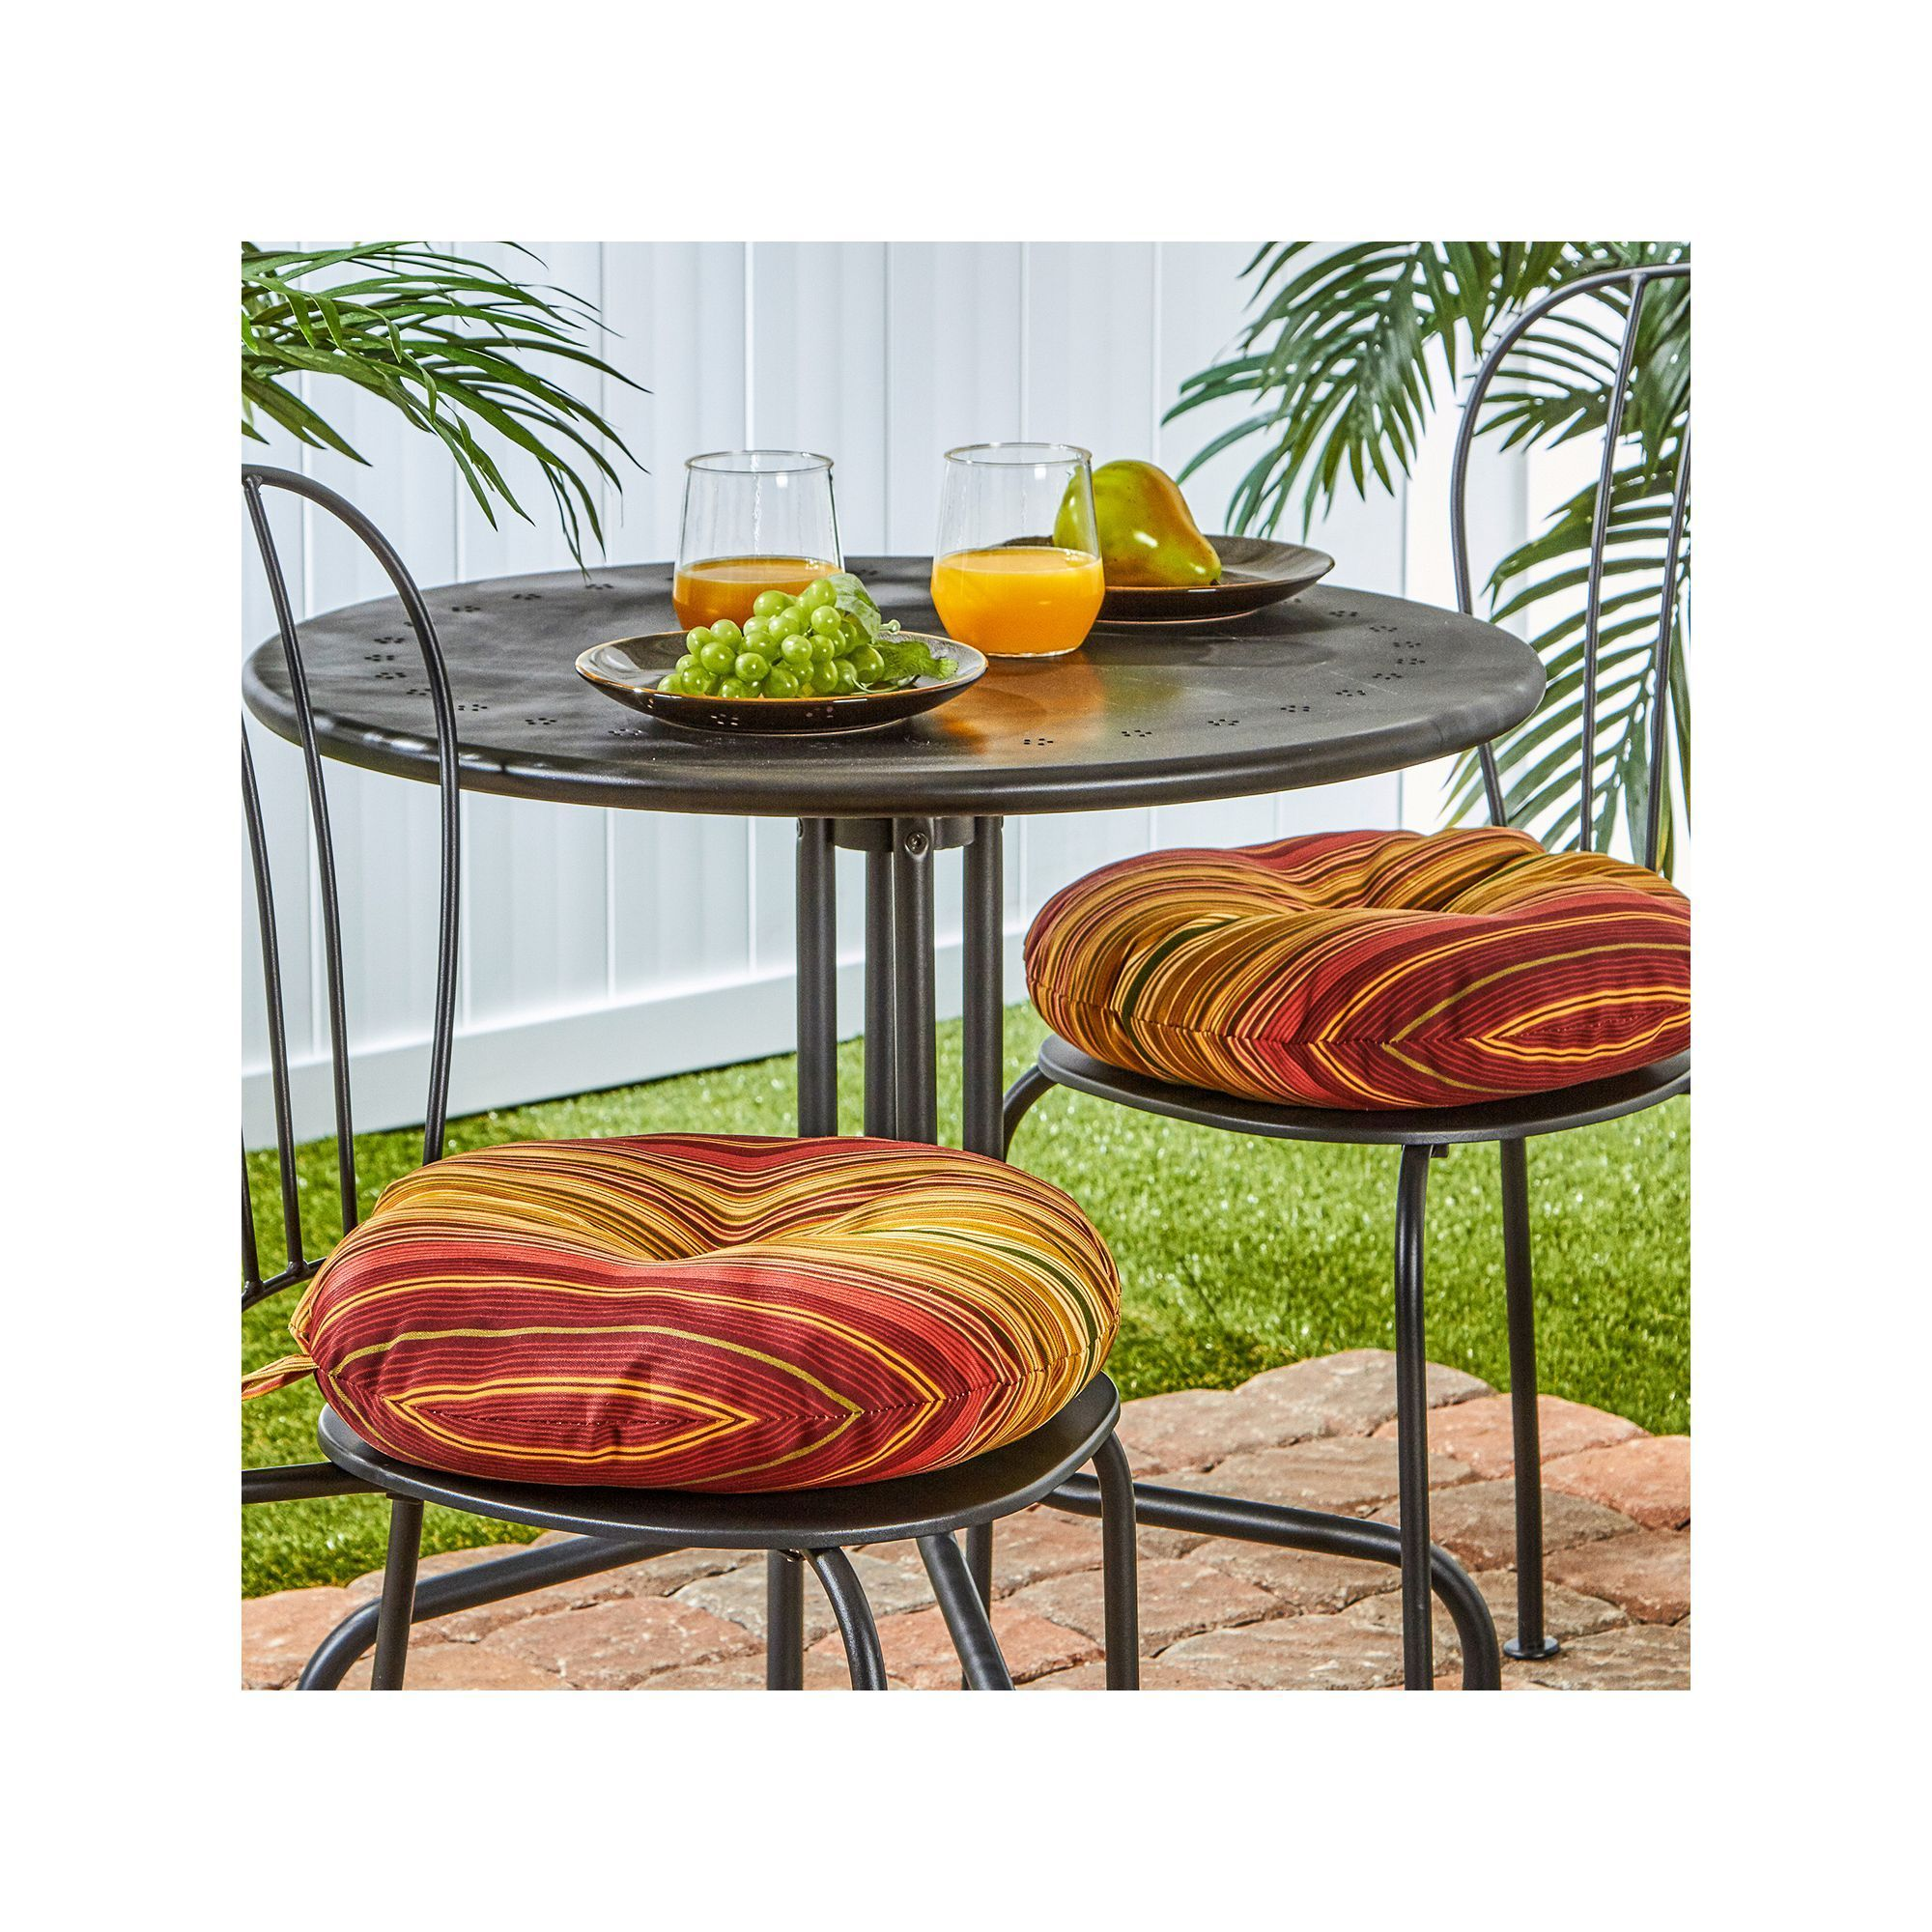 Chair Cushions Outdoor Round